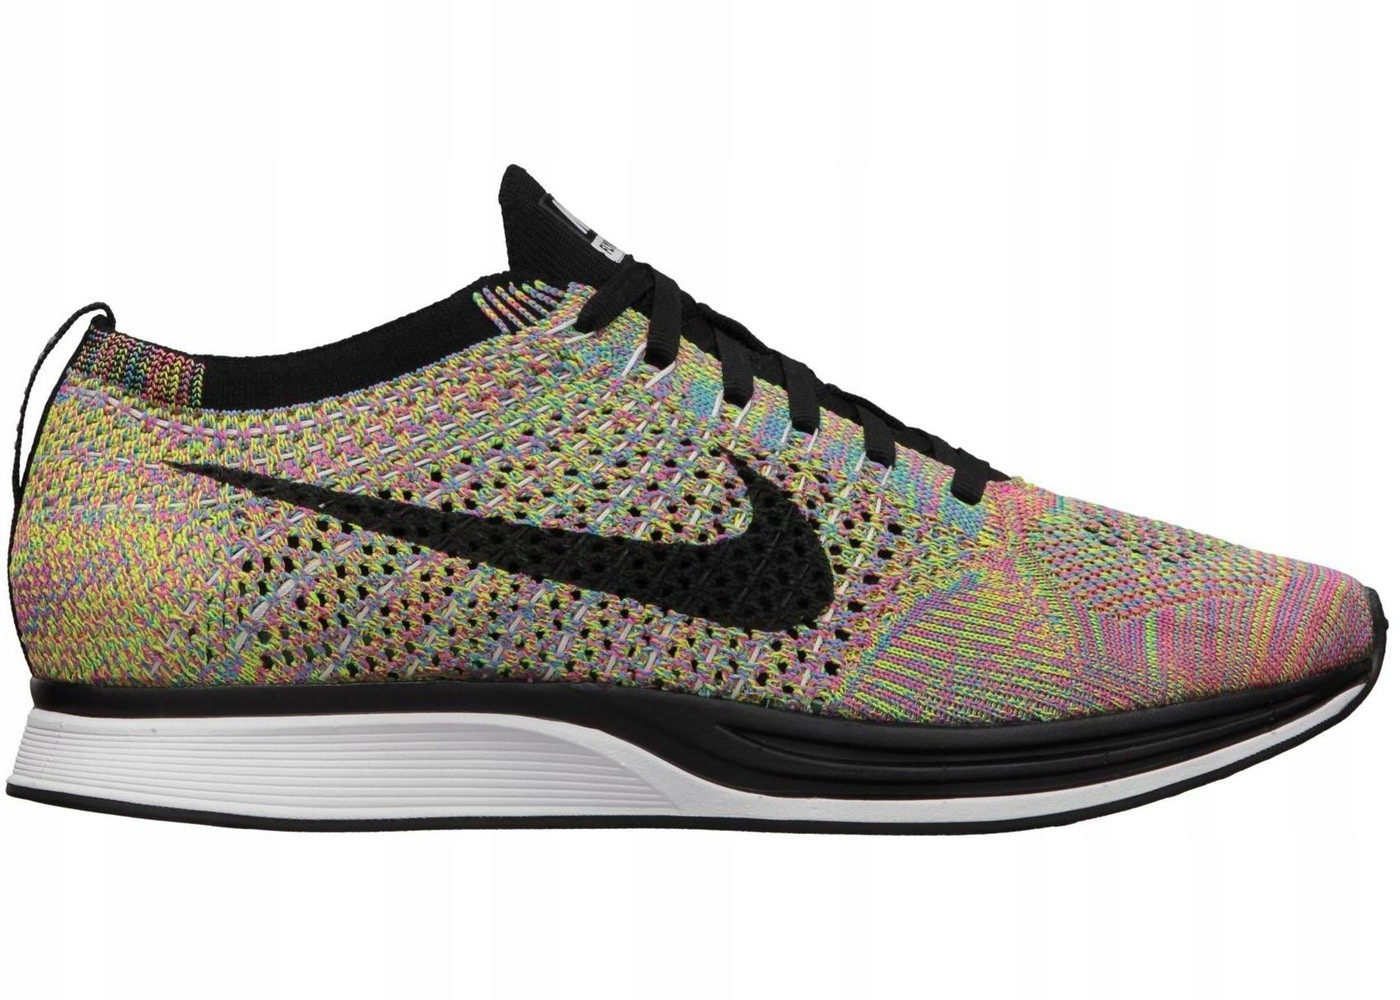 8a8a99a253ab promo code for nike flyknit racer pure platinum 7c1ed e6cf2  inexpensive nike  flyknit racer multicolor 1.0 r. 45 44ab6 97012